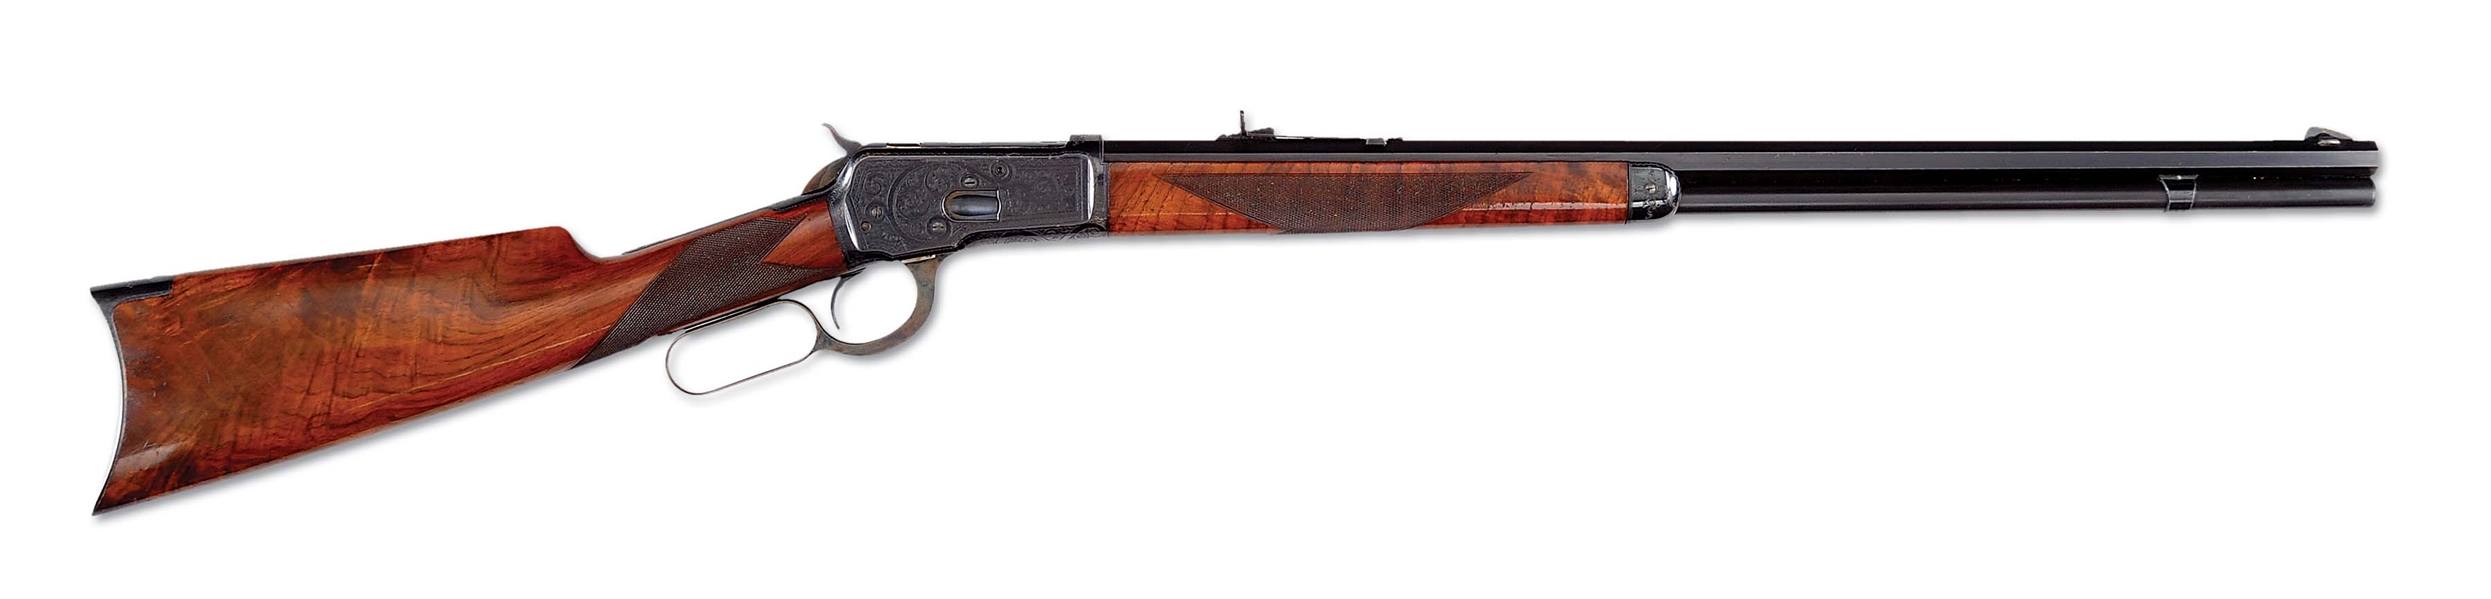 (A) MAGNIFICENT FACTORY ENGRAVED 1ST YEAR PRODUCTION WINCHESTER MODEL 1892 .44 CALIBER RIFLE.